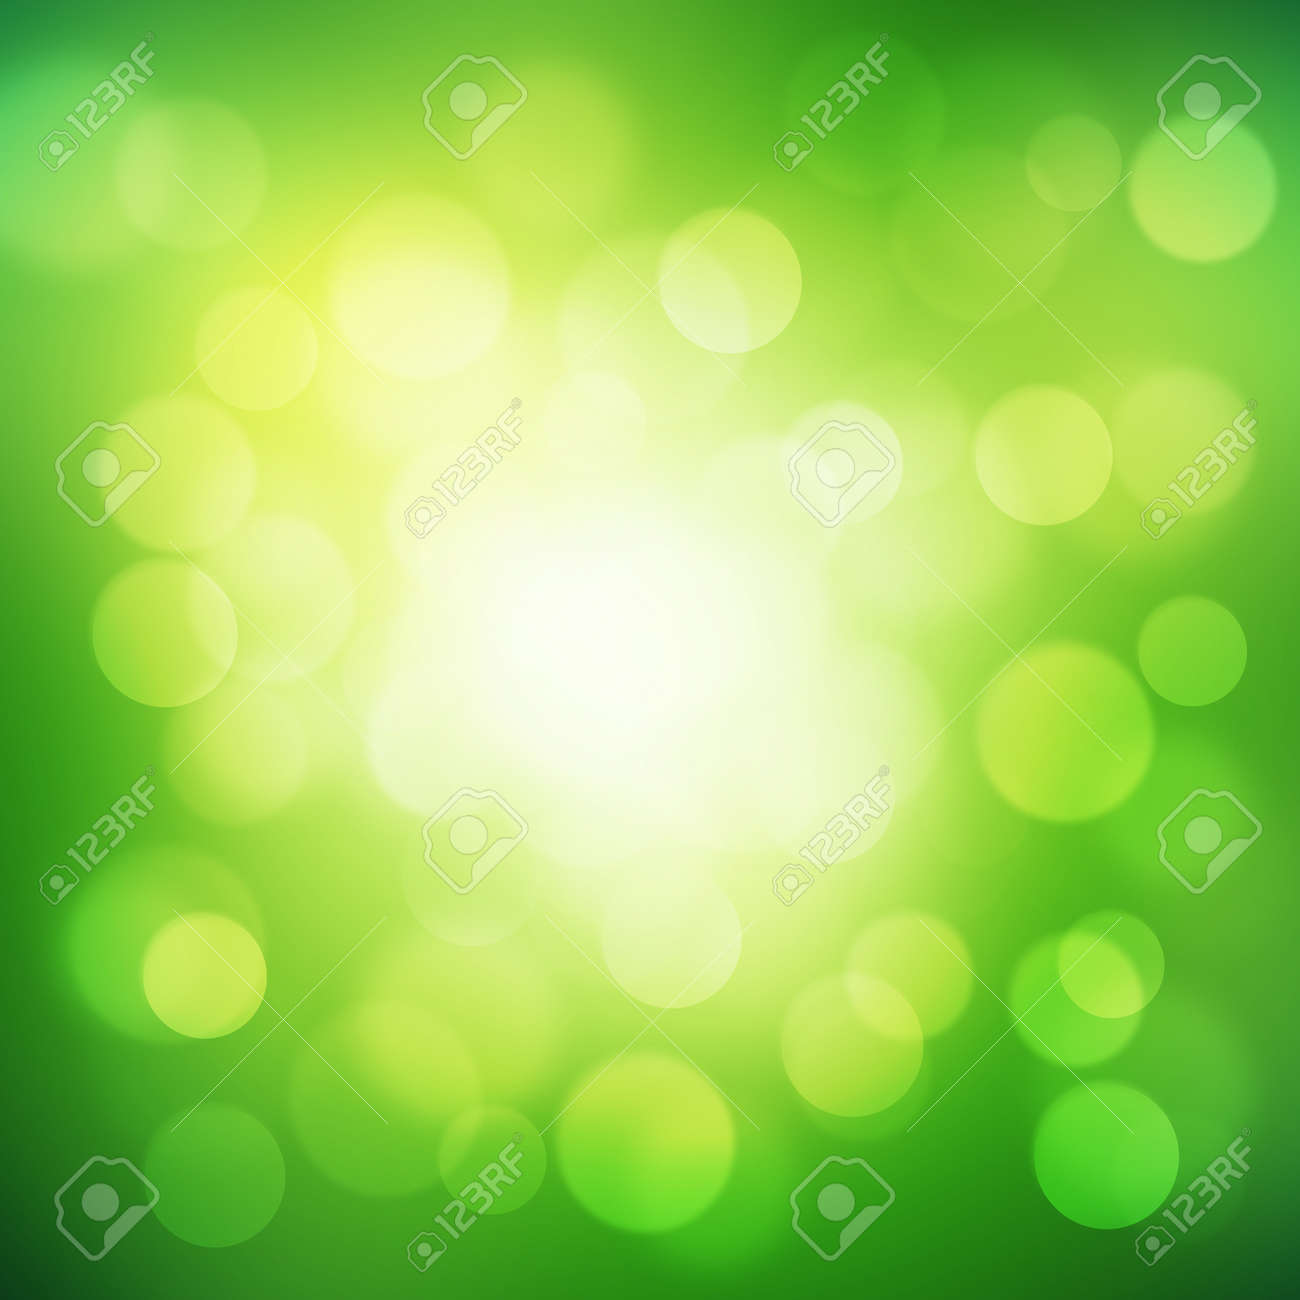 Green Bokeh Abstract Light Backgrounds Stock Photo Picture And Royalty Free Image Image 23818973